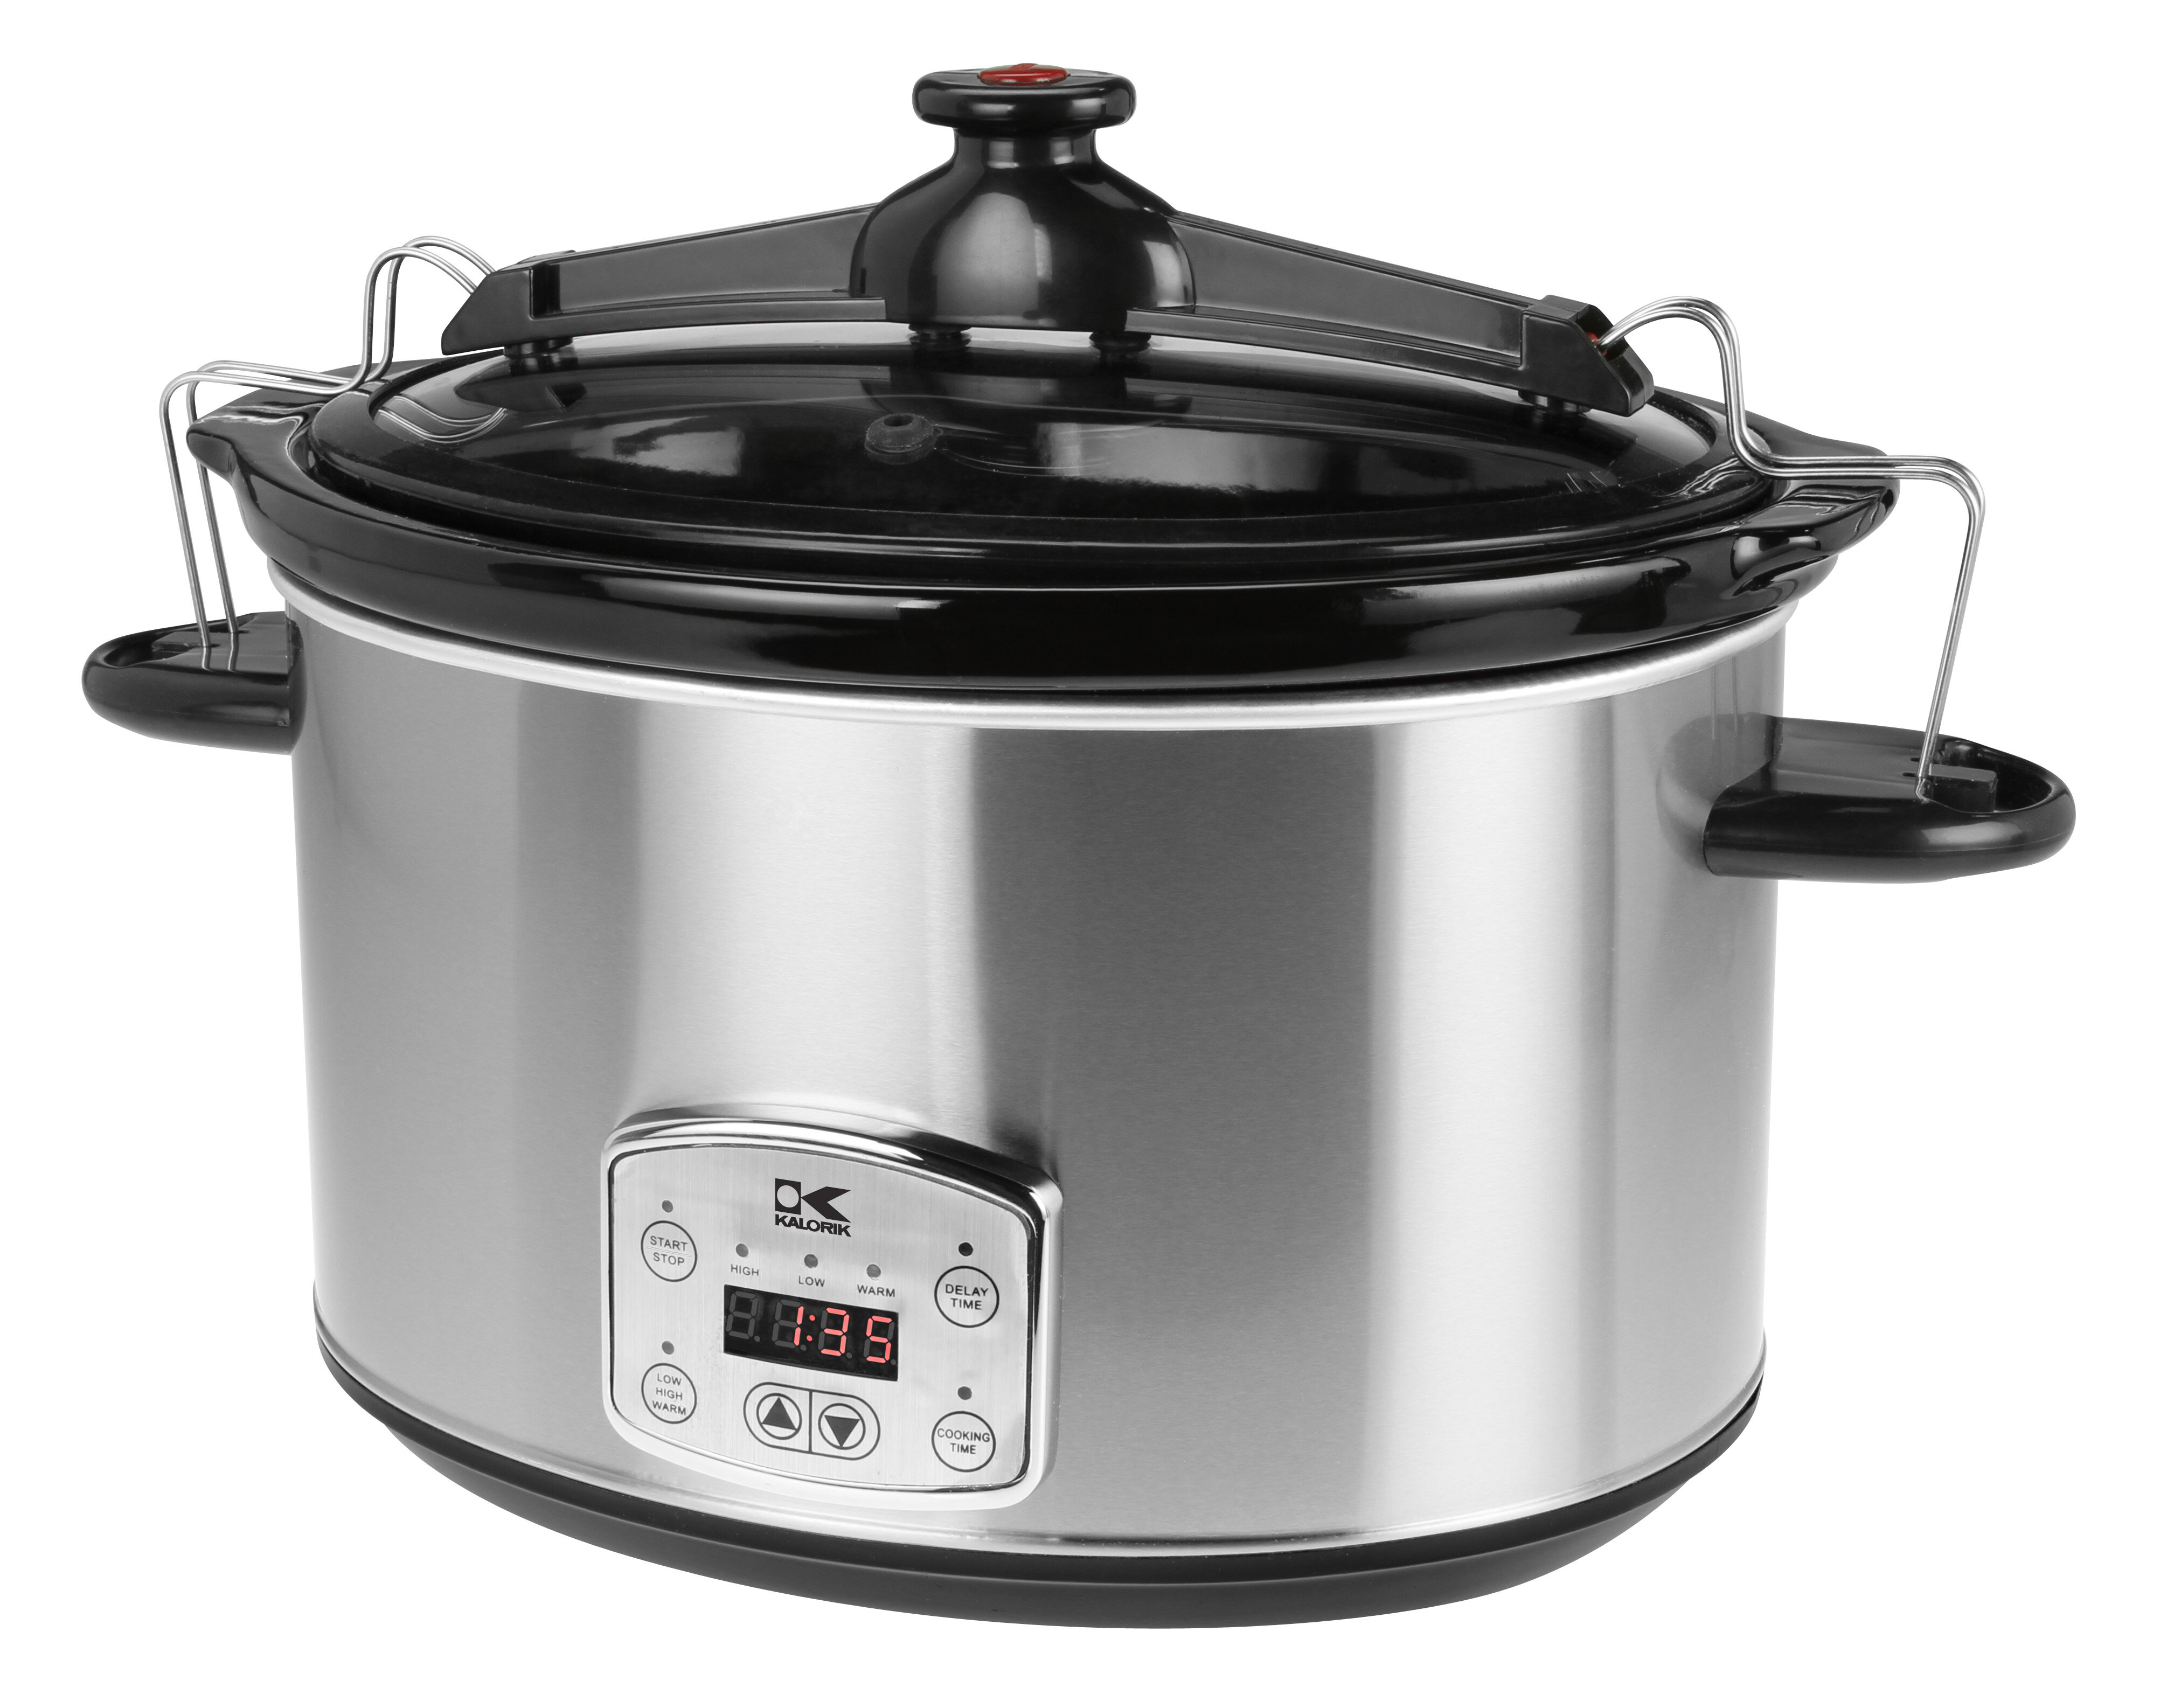 Kalorik 8 Qt Digital Slow Cooker Reviews